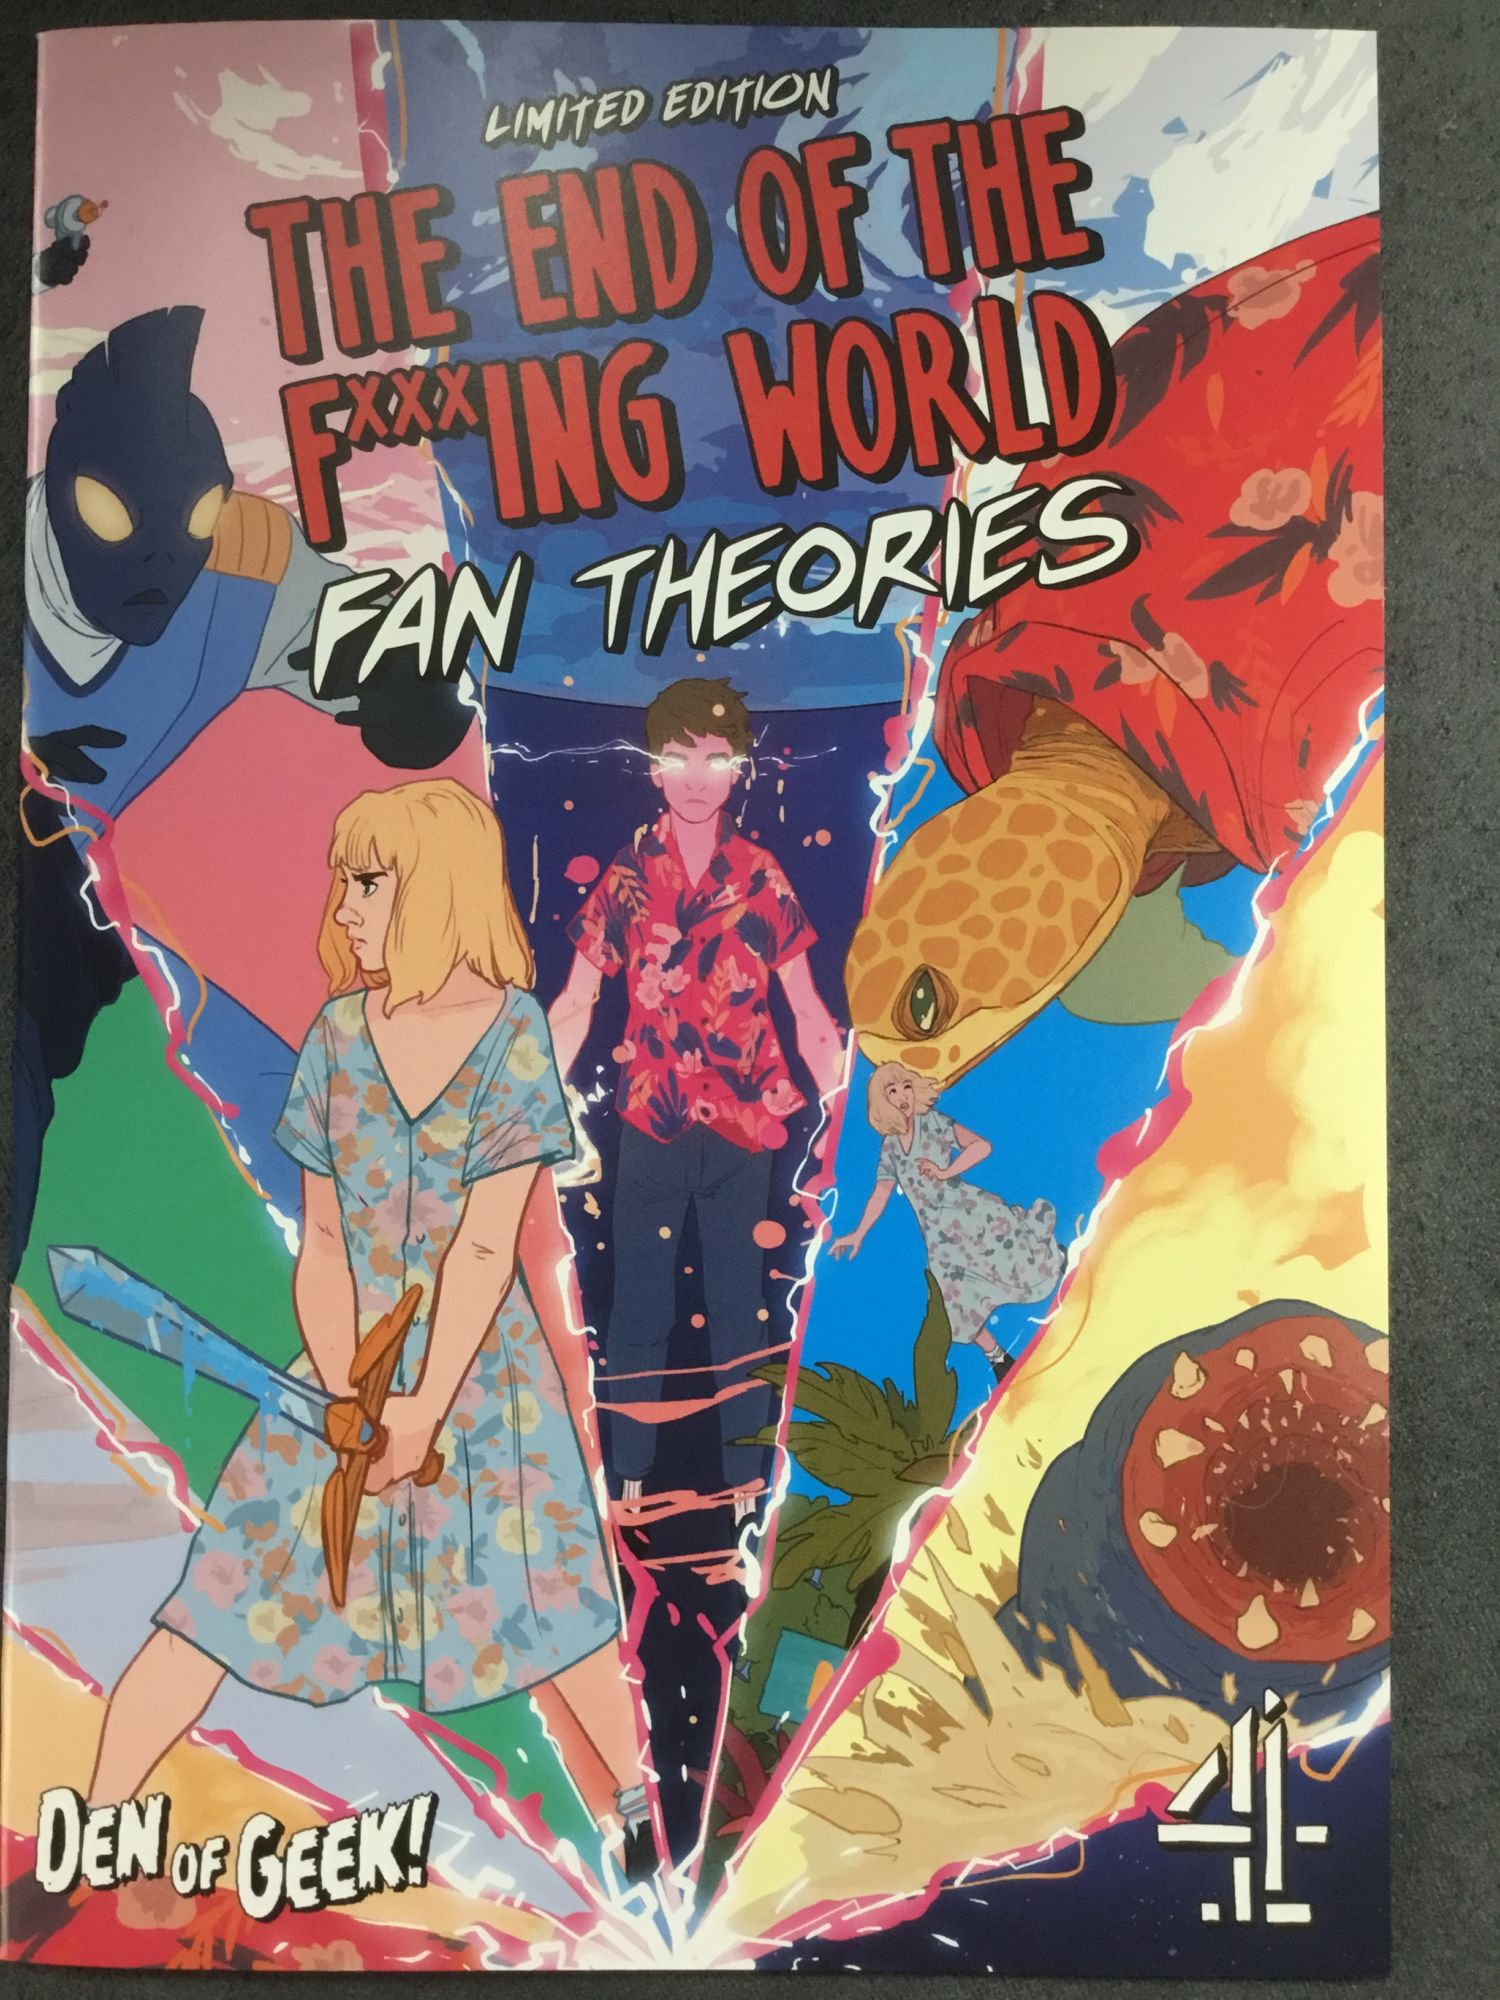 The End Of The F***king World Gets An Official Fan Theories Comic for MCM London